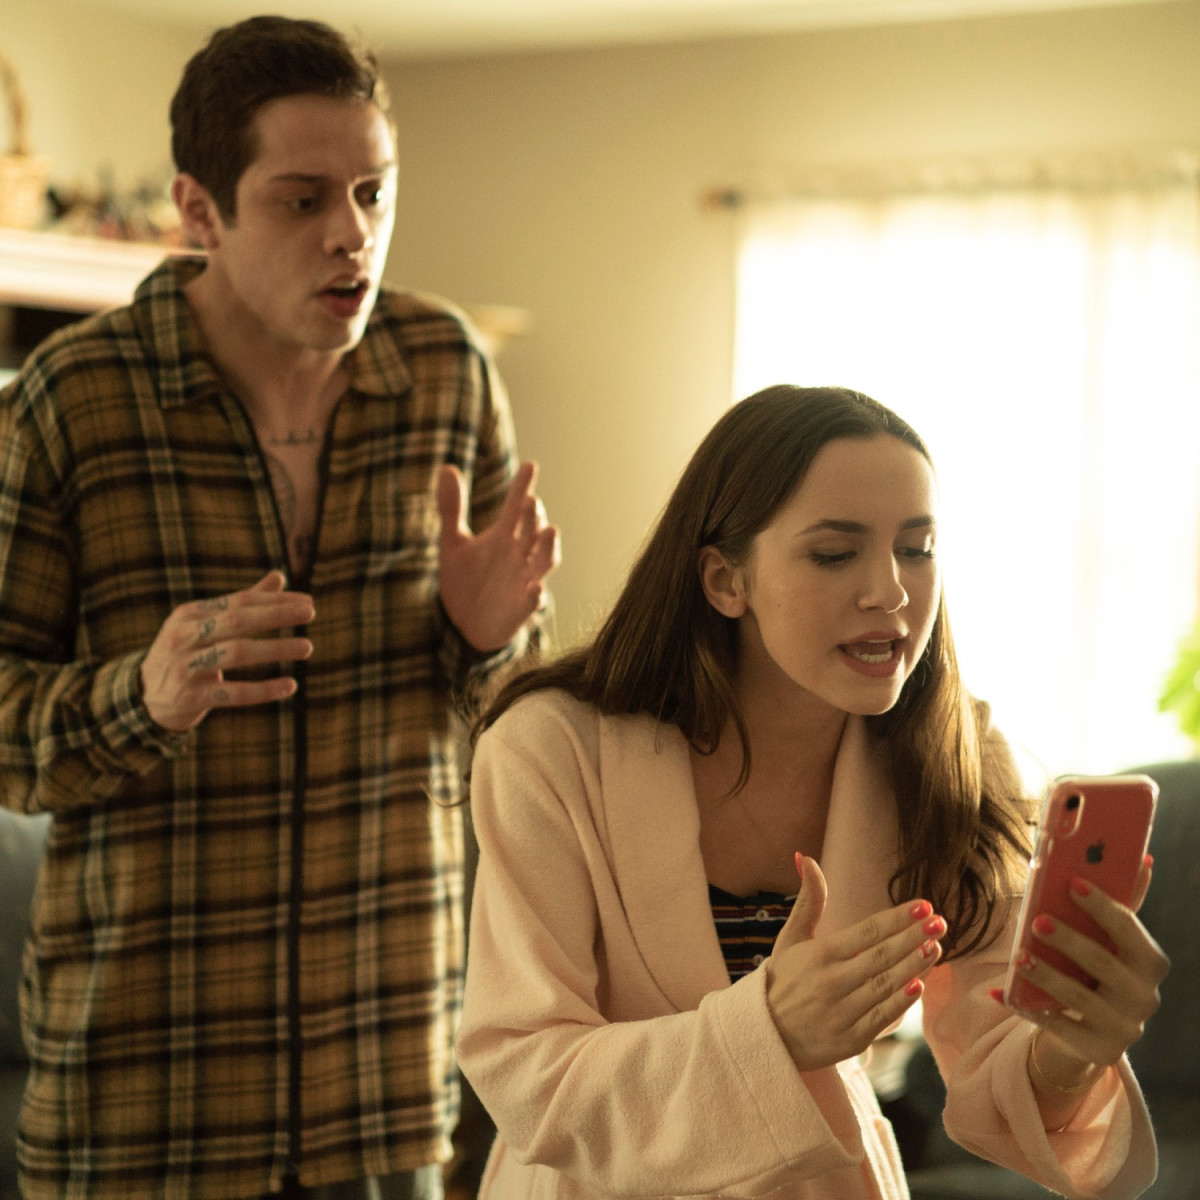 Pete Davidson and Maude Apatow in The King of Staten Island